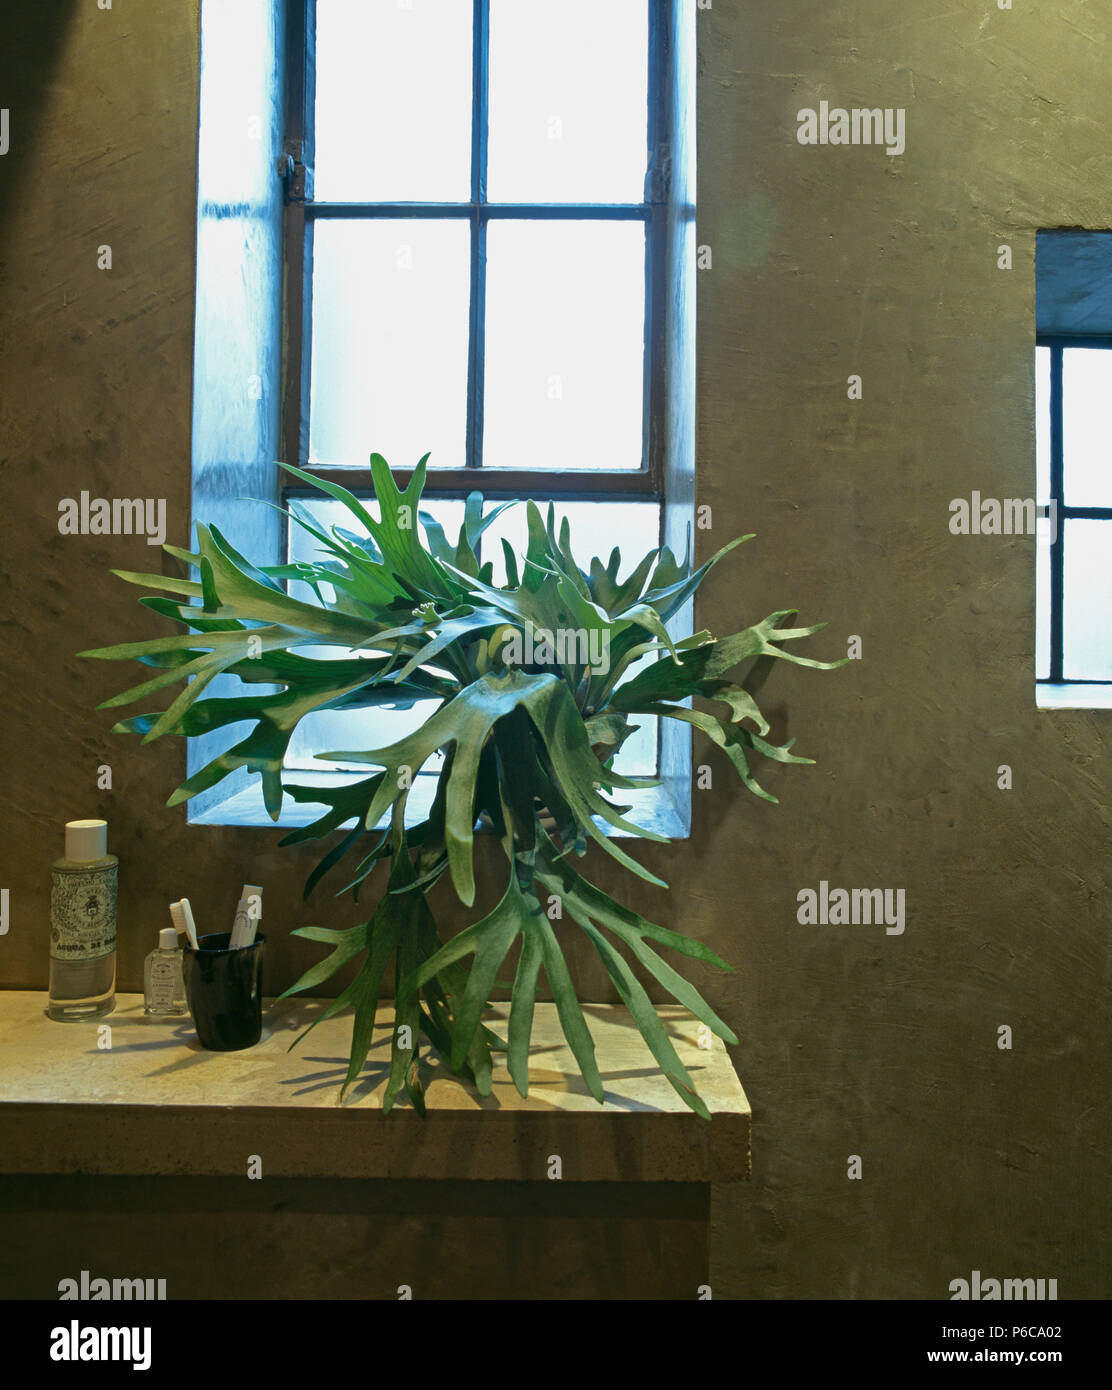 Close-up of staghorn fern on windowsill in modern bathroom with polished concrete walls - Stock Image